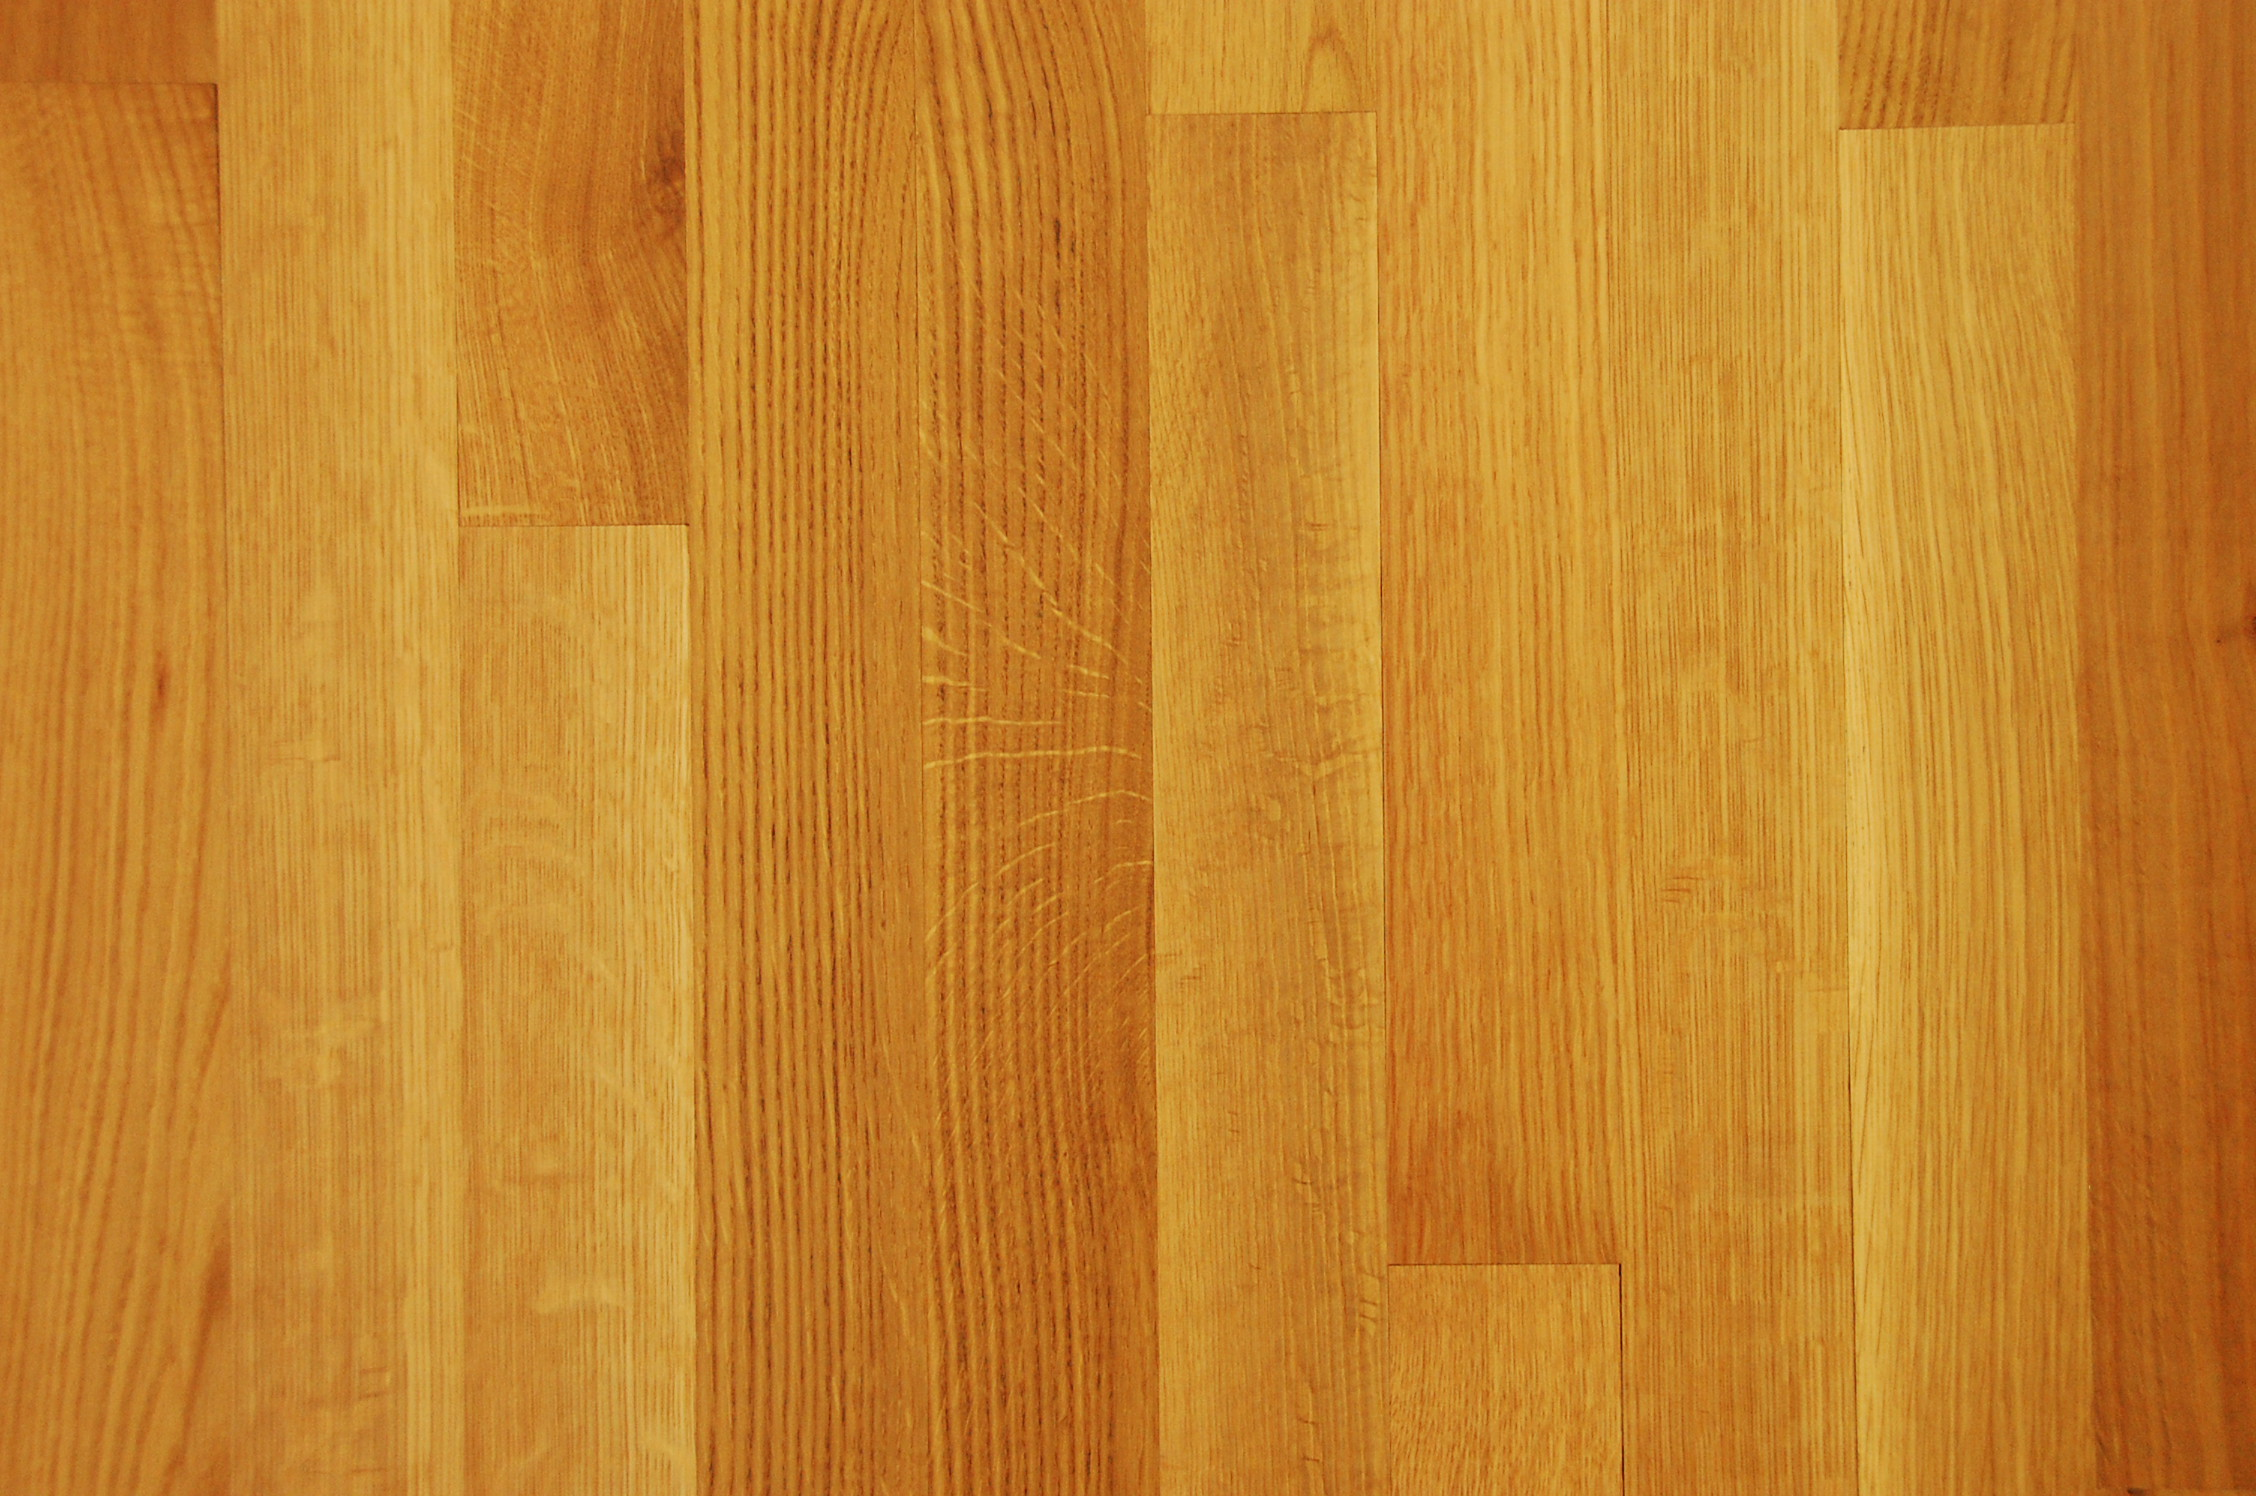 quartered white oak